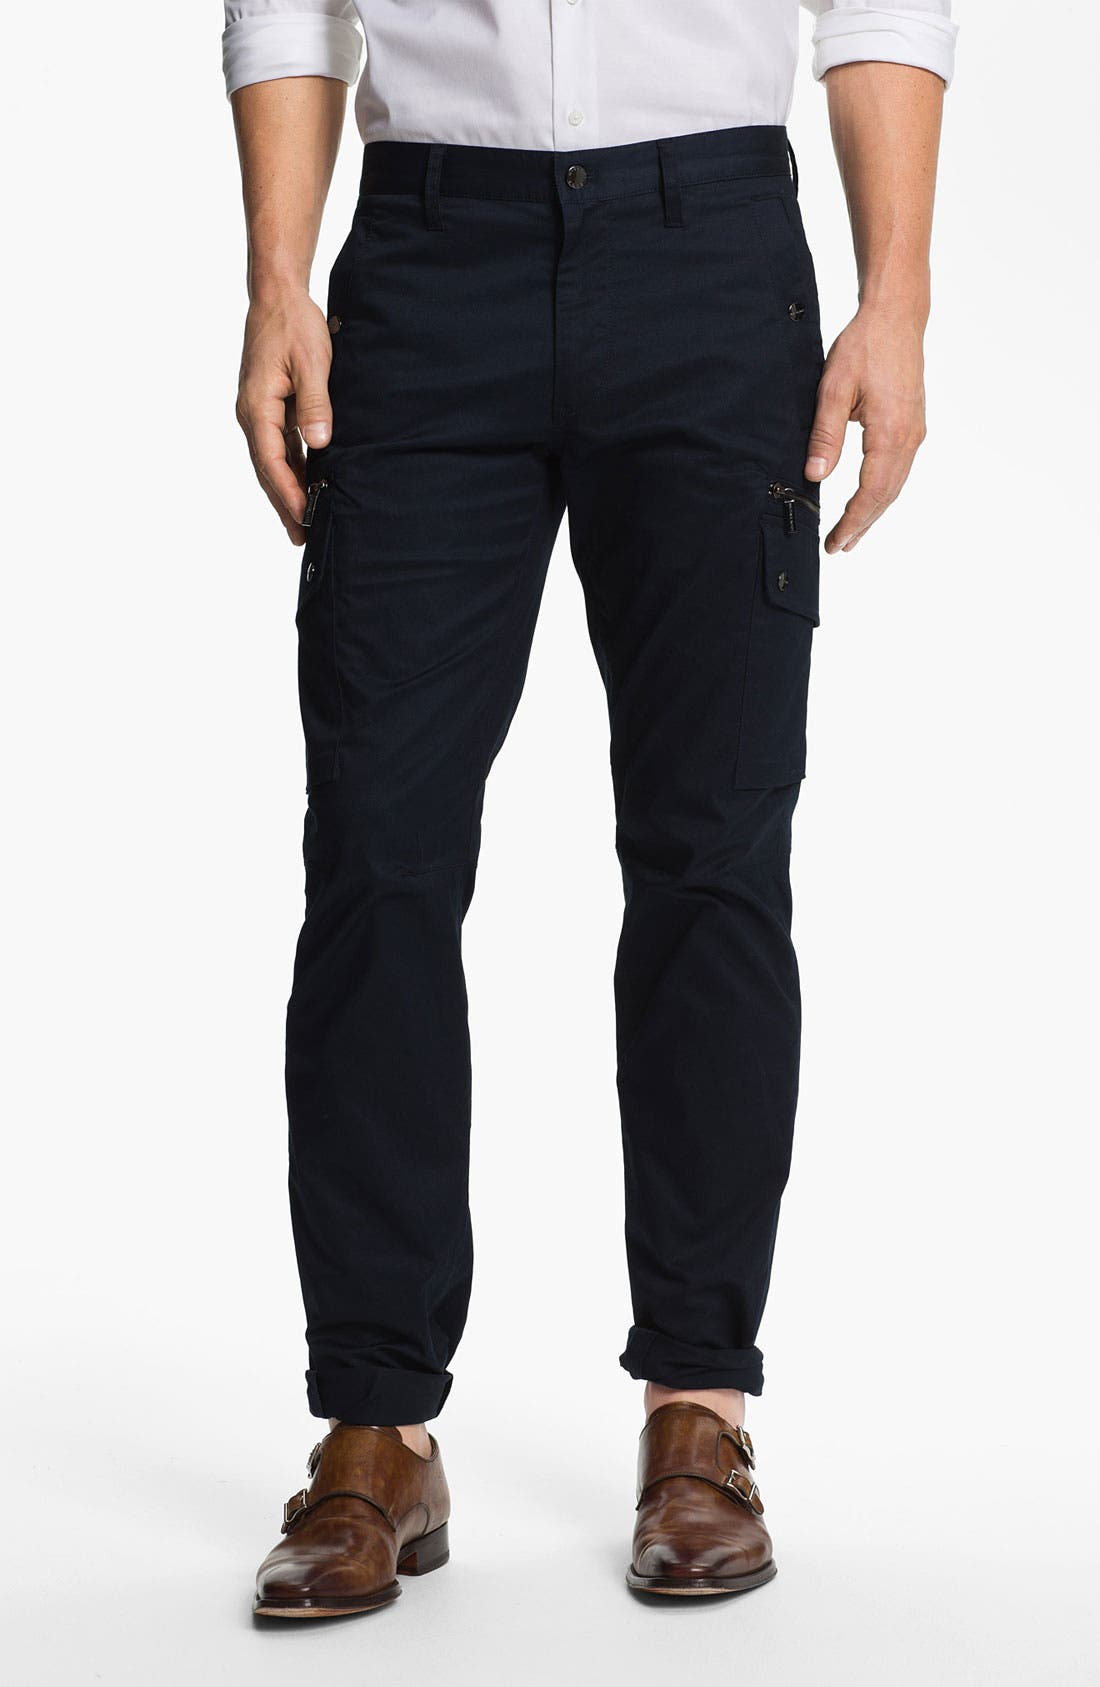 Alternate Image 1 Selected - Michael Kors Slim Leg Utility Pants